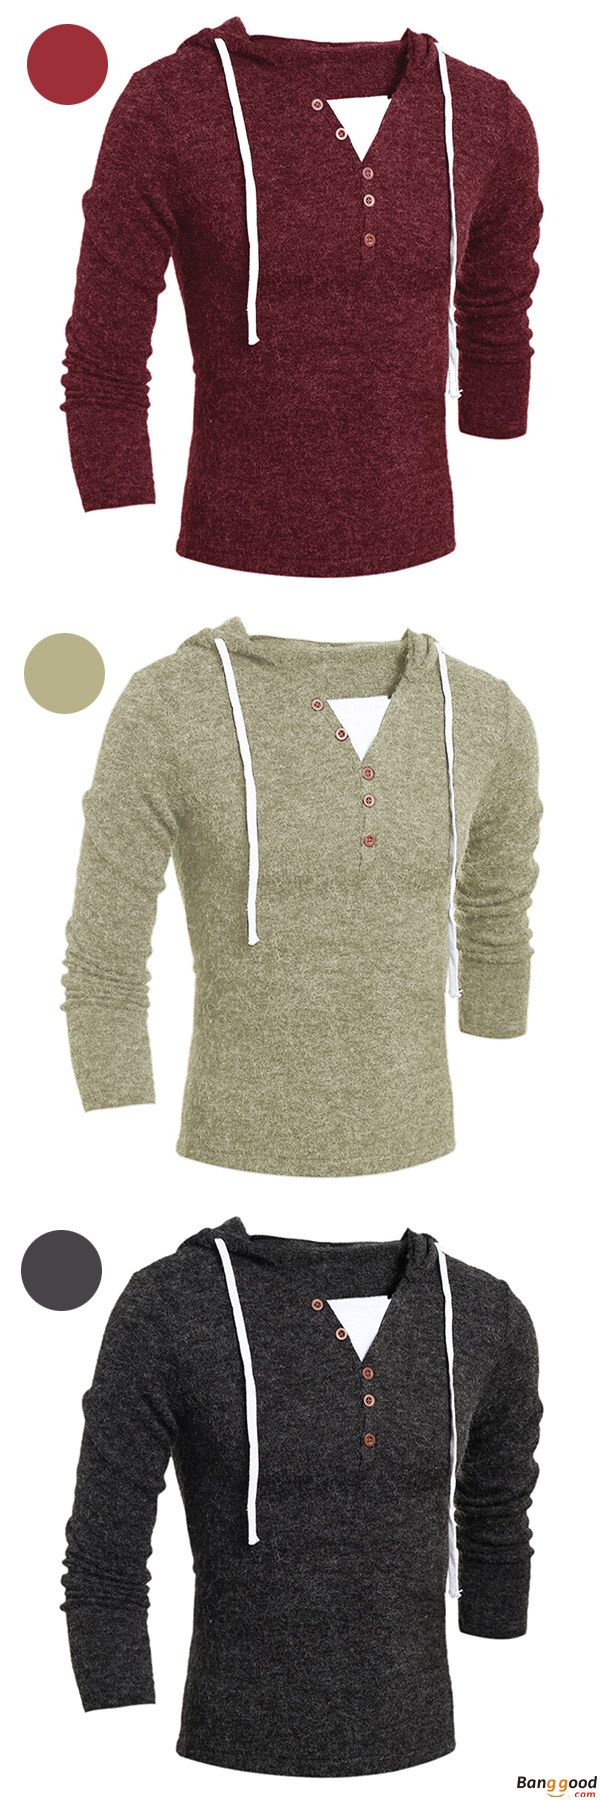 Casual Knitted Hoodie. Simple Design With Good Quality. US$24.64 + Free Shipping.